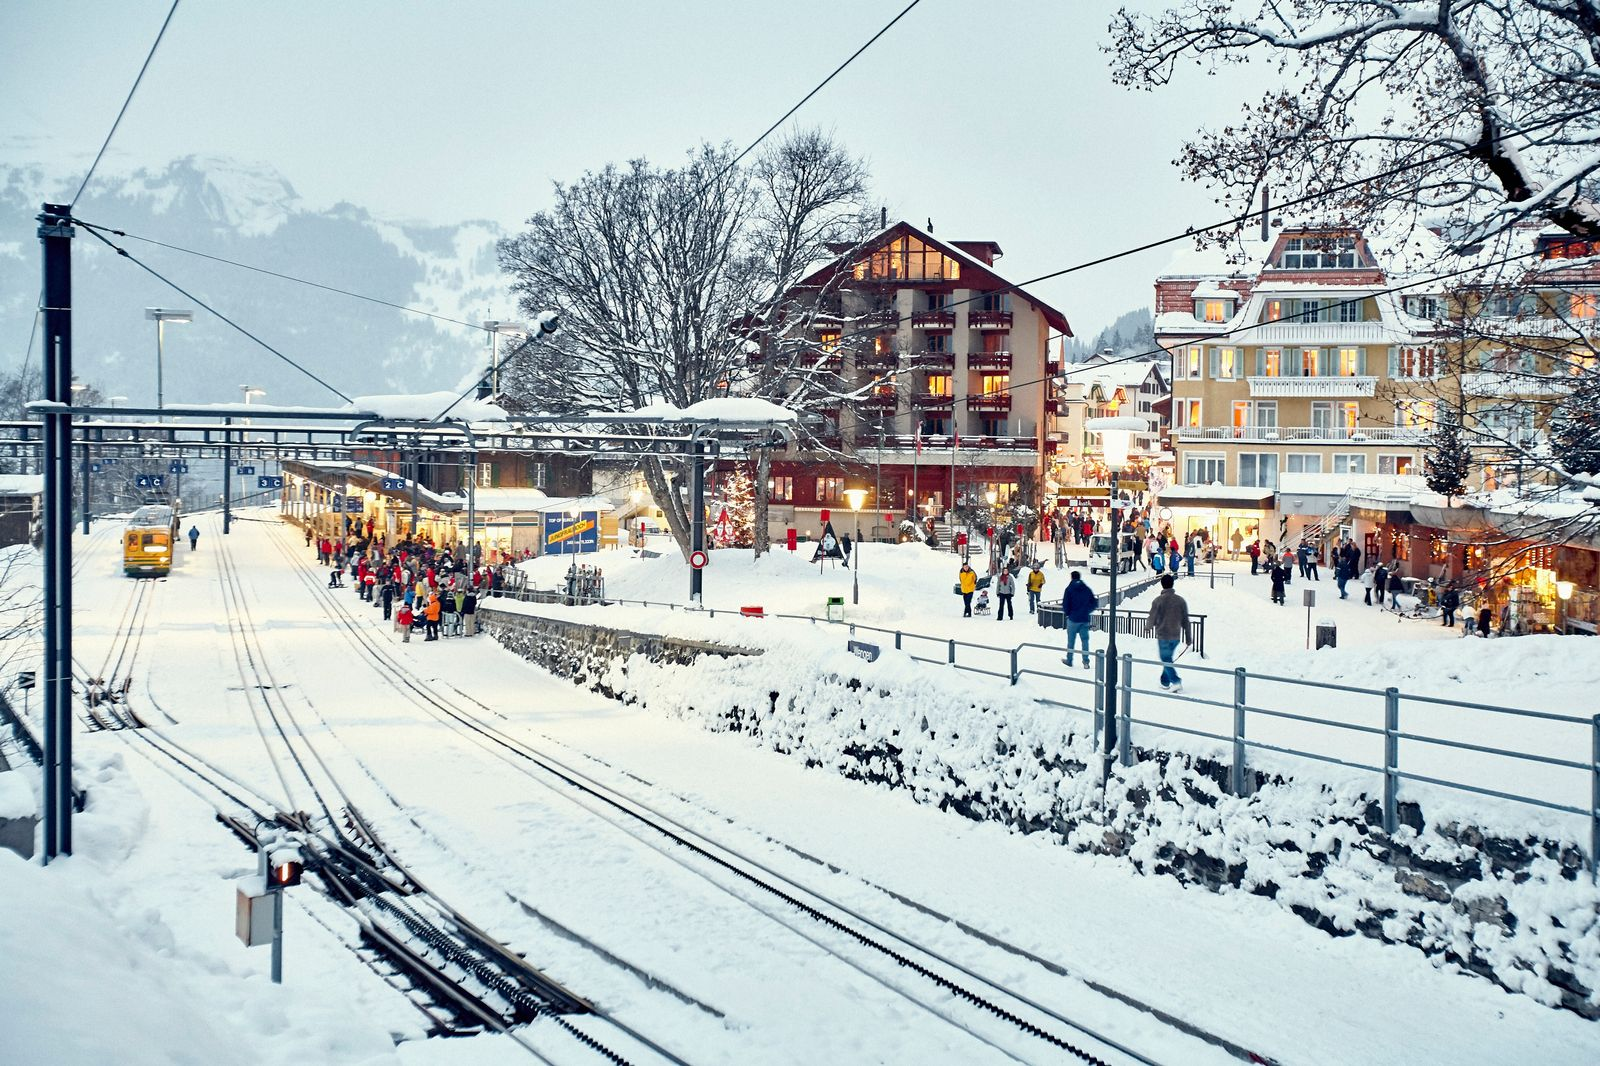 Crowds of passengers at snow covered train station, Wengen, Switzerland